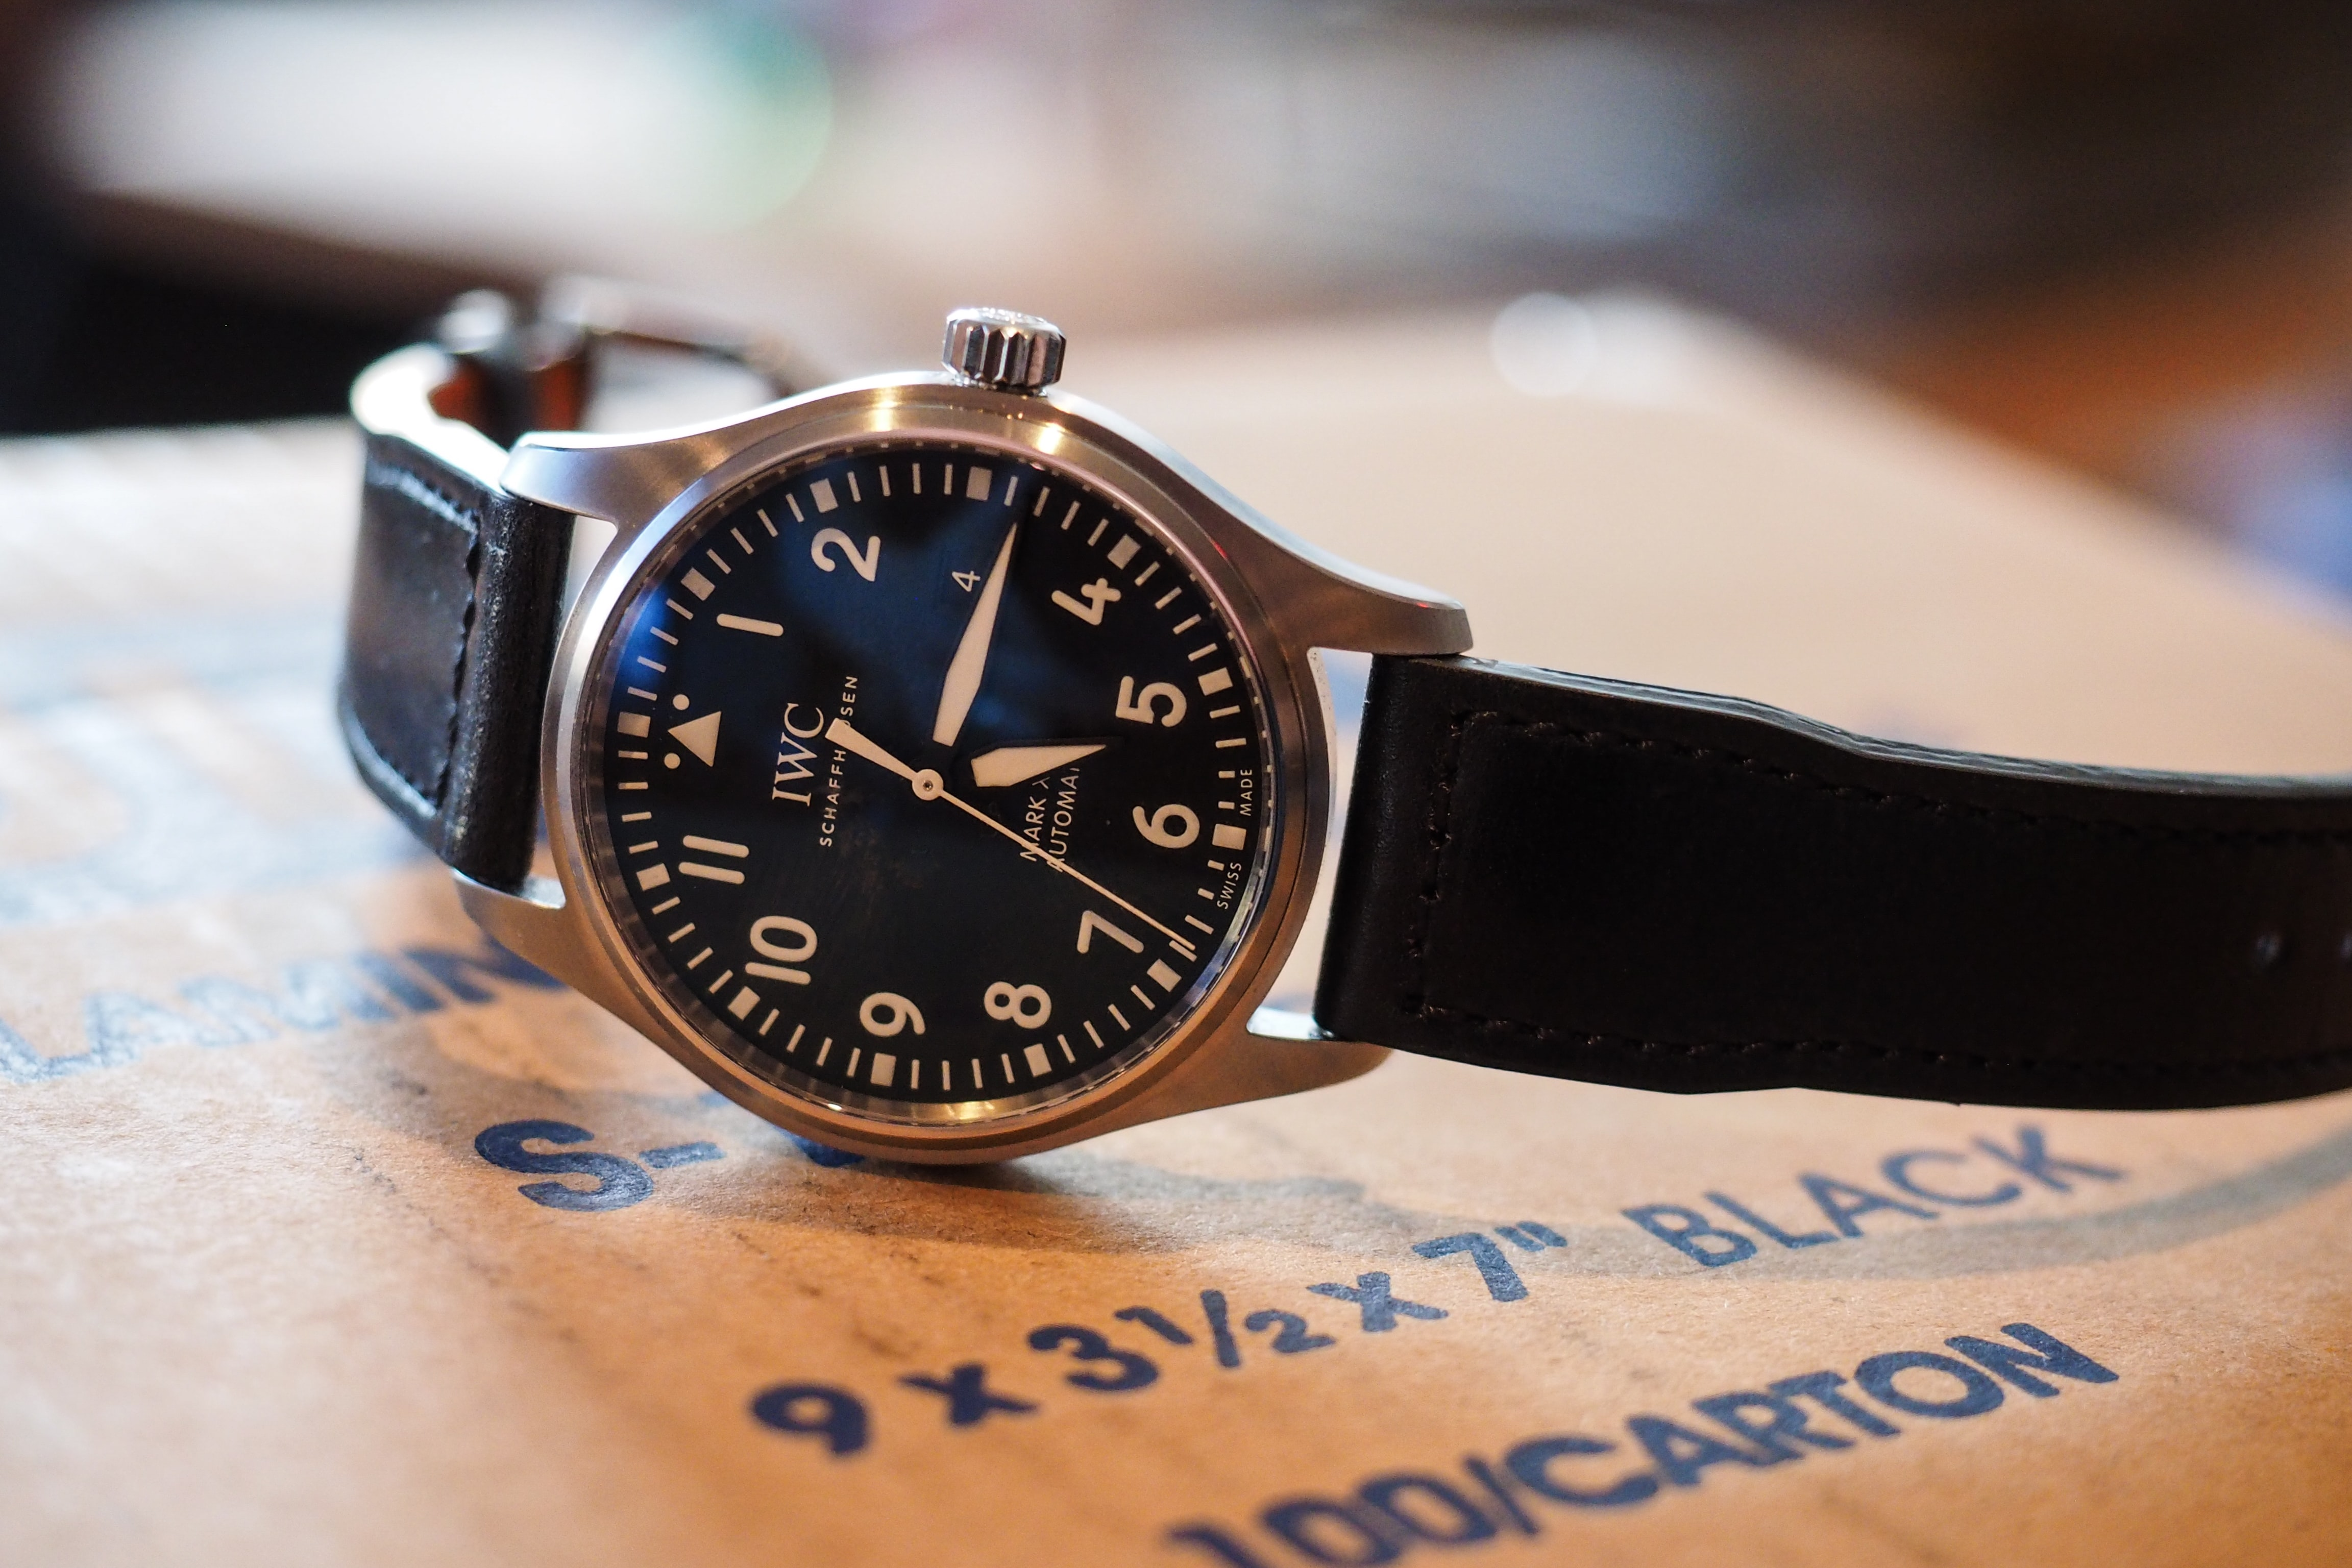 iwc mark xviii date window A Week On The Wrist: The IWC Mark XVIII A Week On The Wrist: The IWC Mark XVIII P3040511